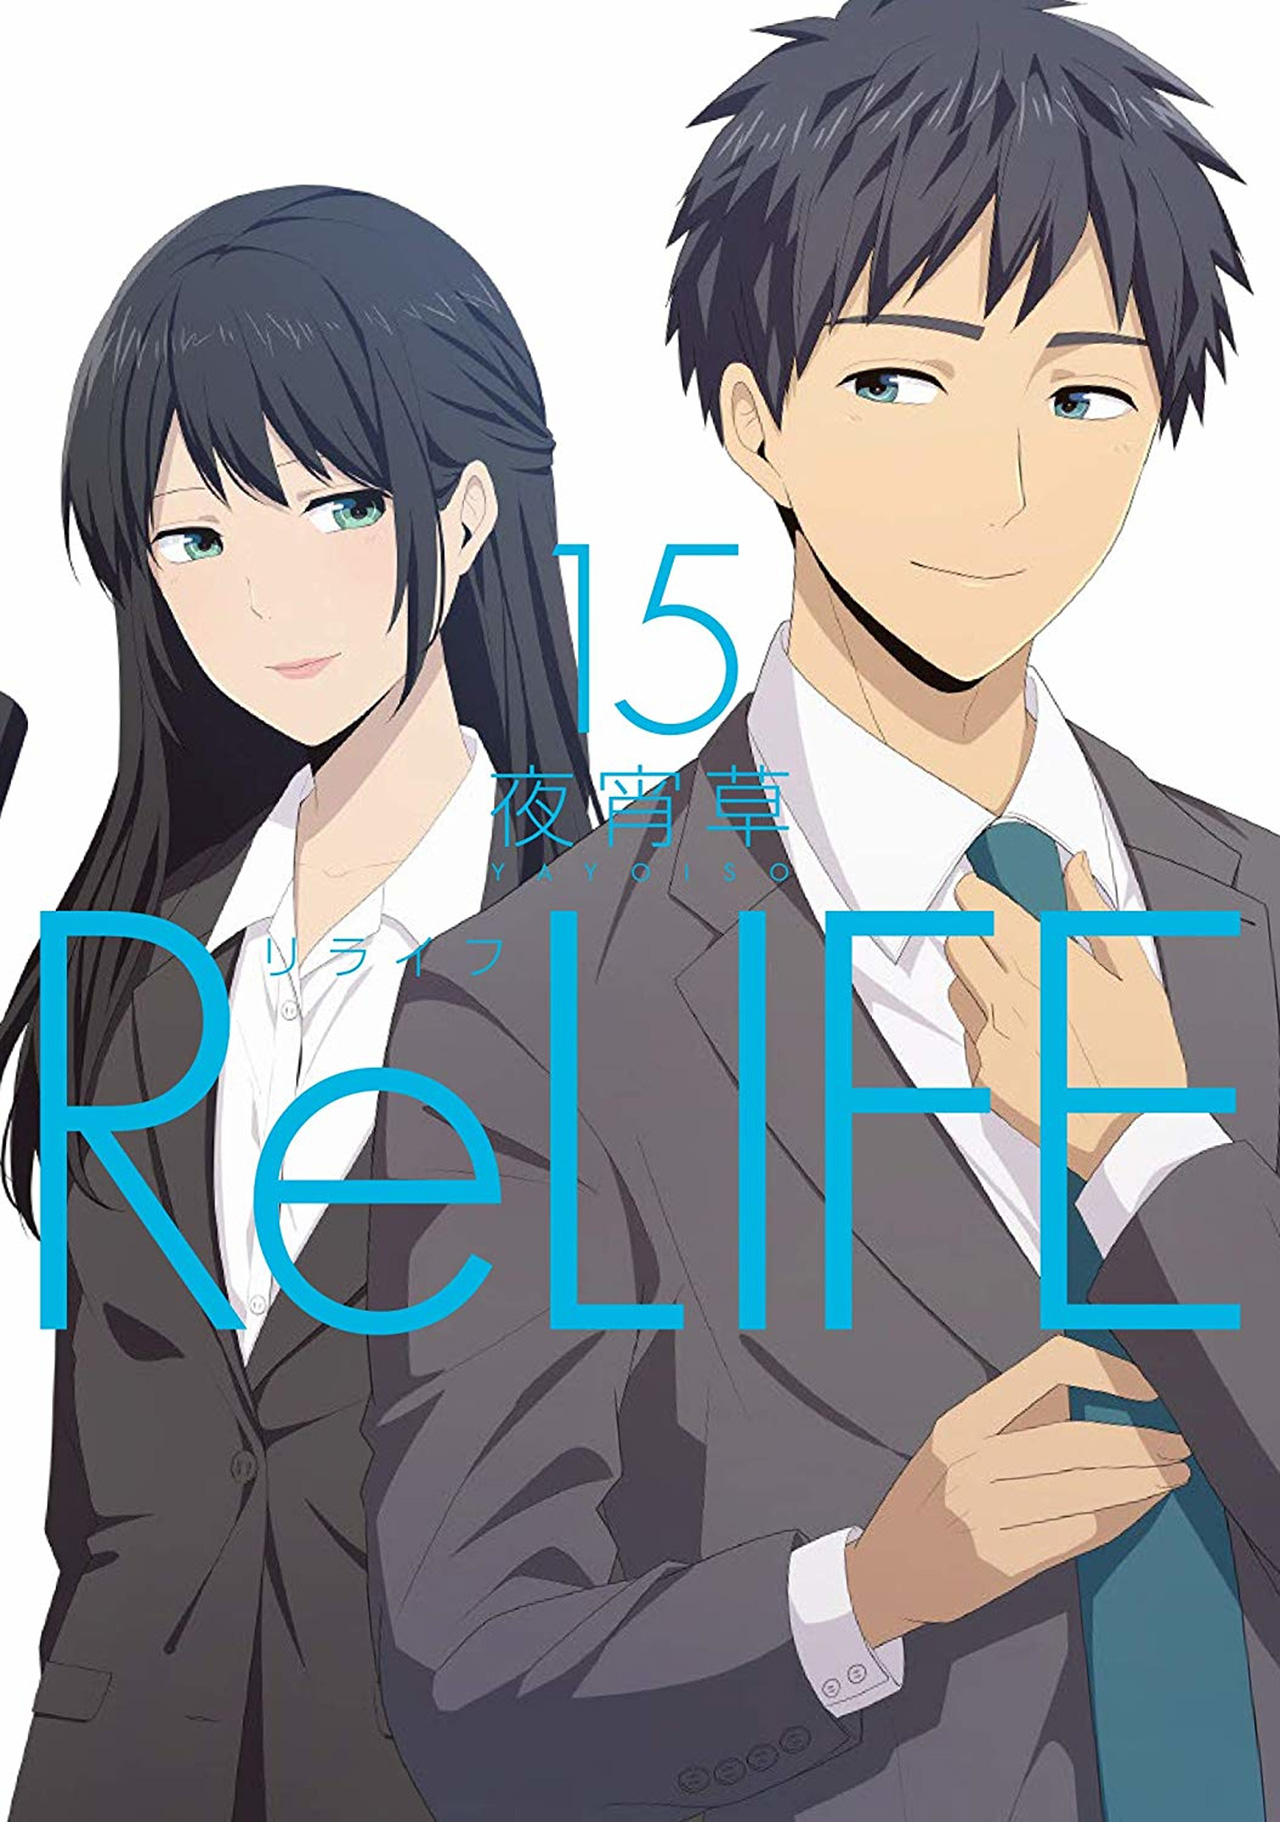 Capa do volume 15 do mangá ReLIFE